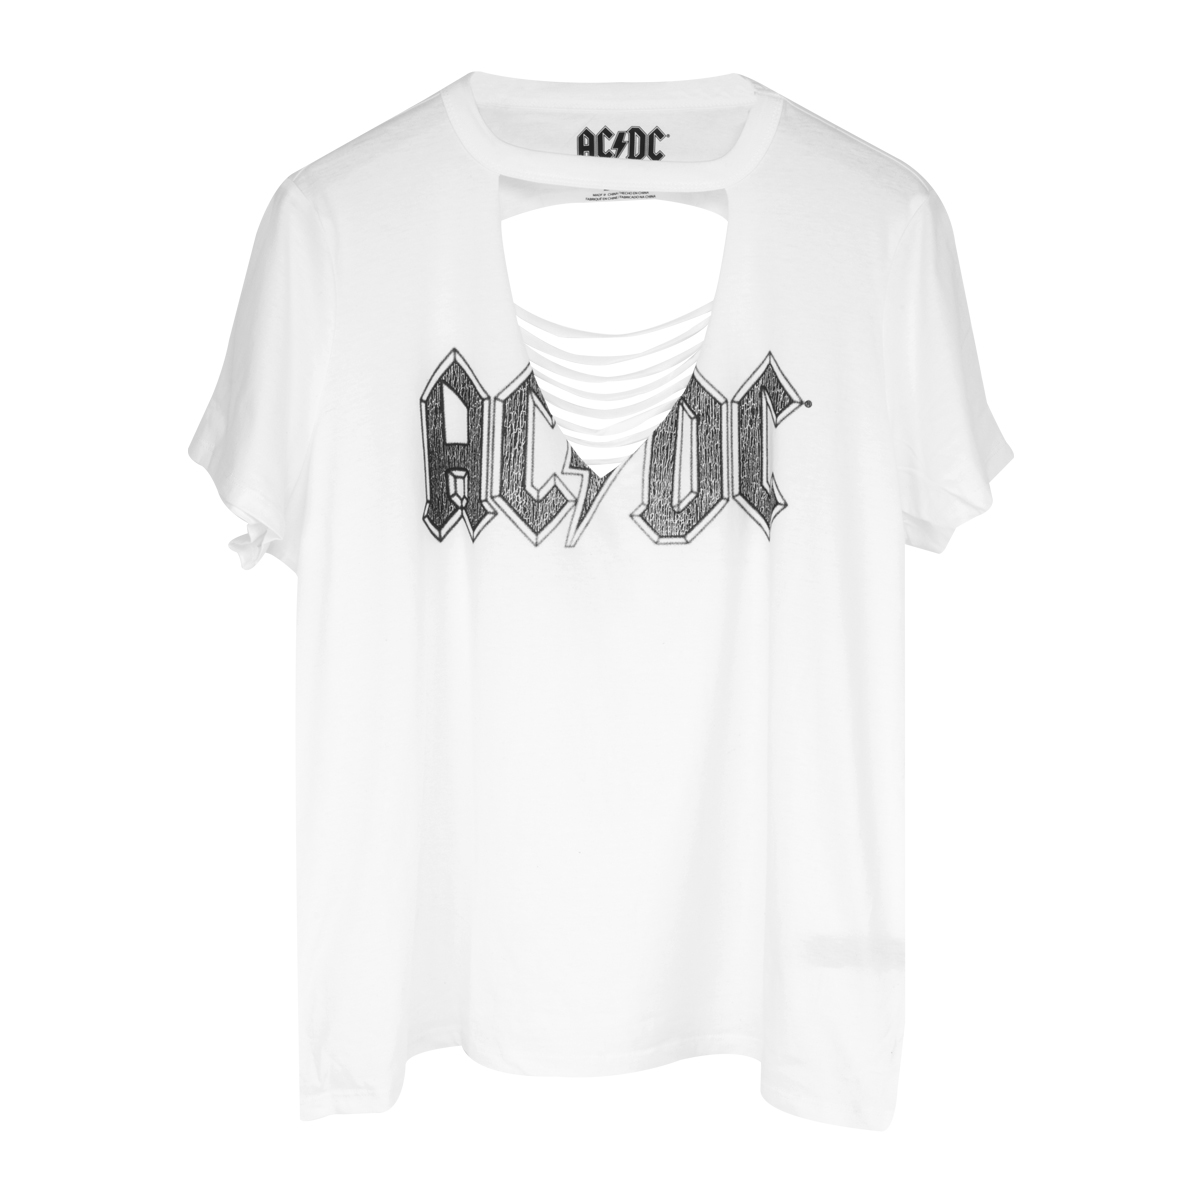 AC/DC Black Logo Women's White V-Cut T-Shirt